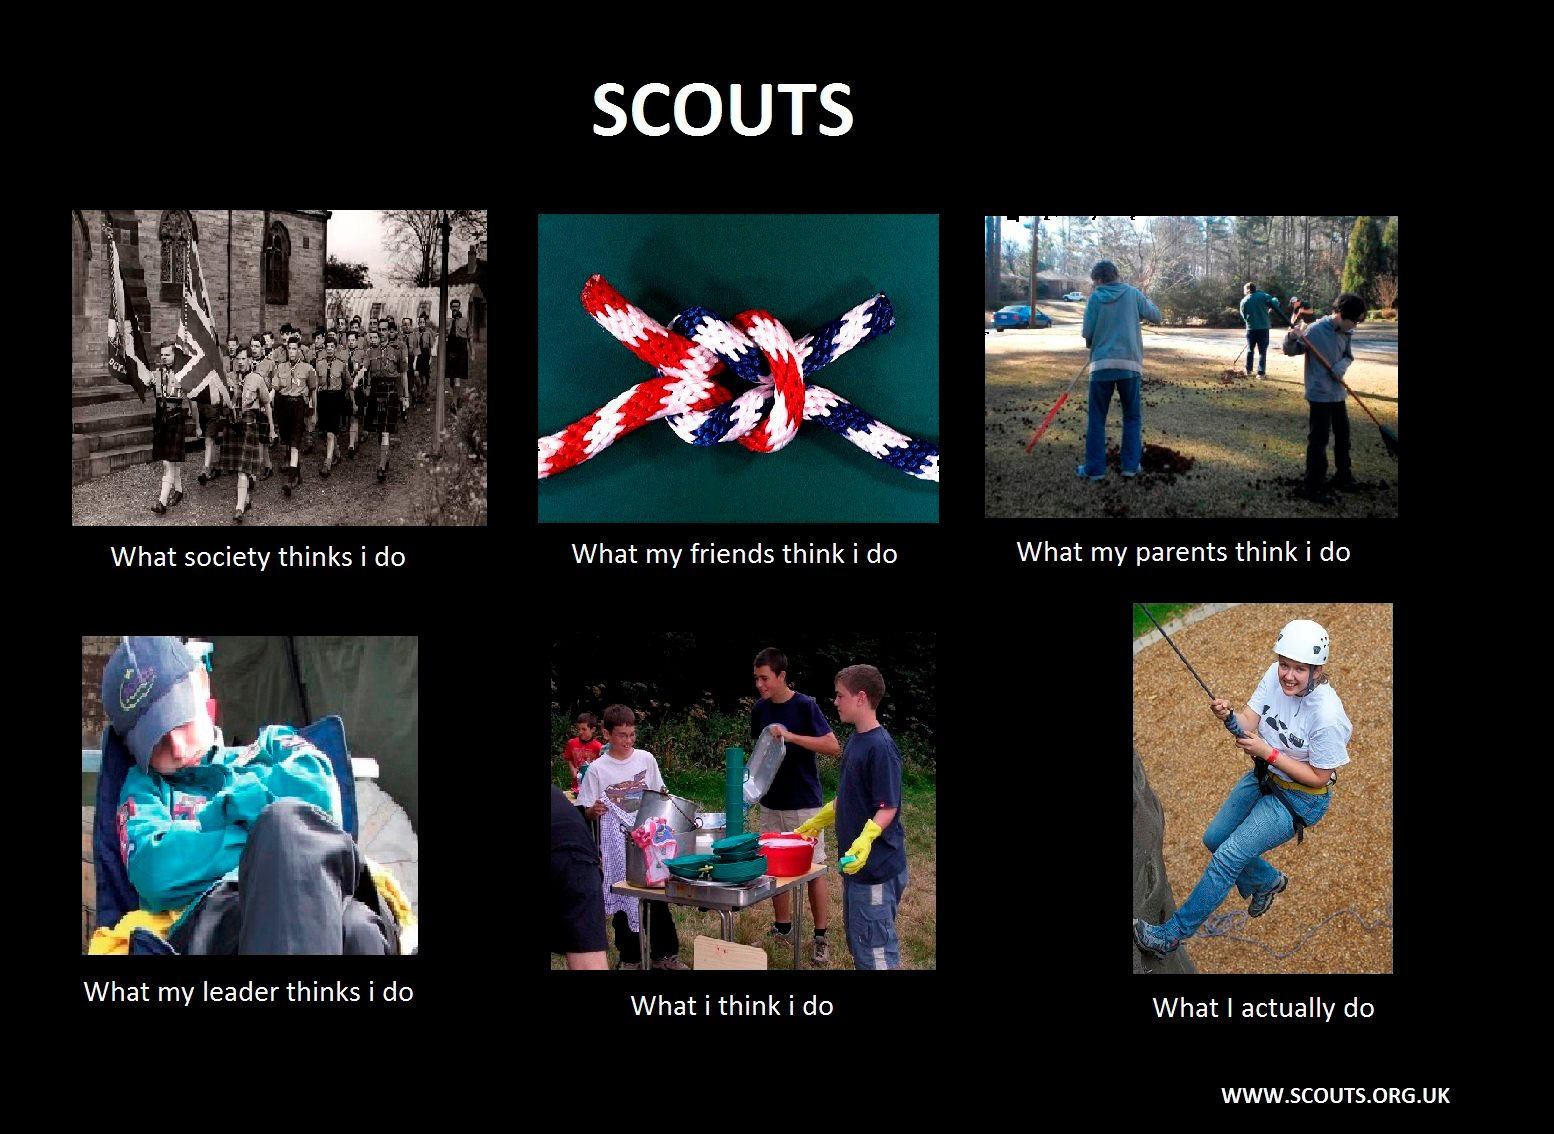 What my friends think I do what I actually do - Scouts